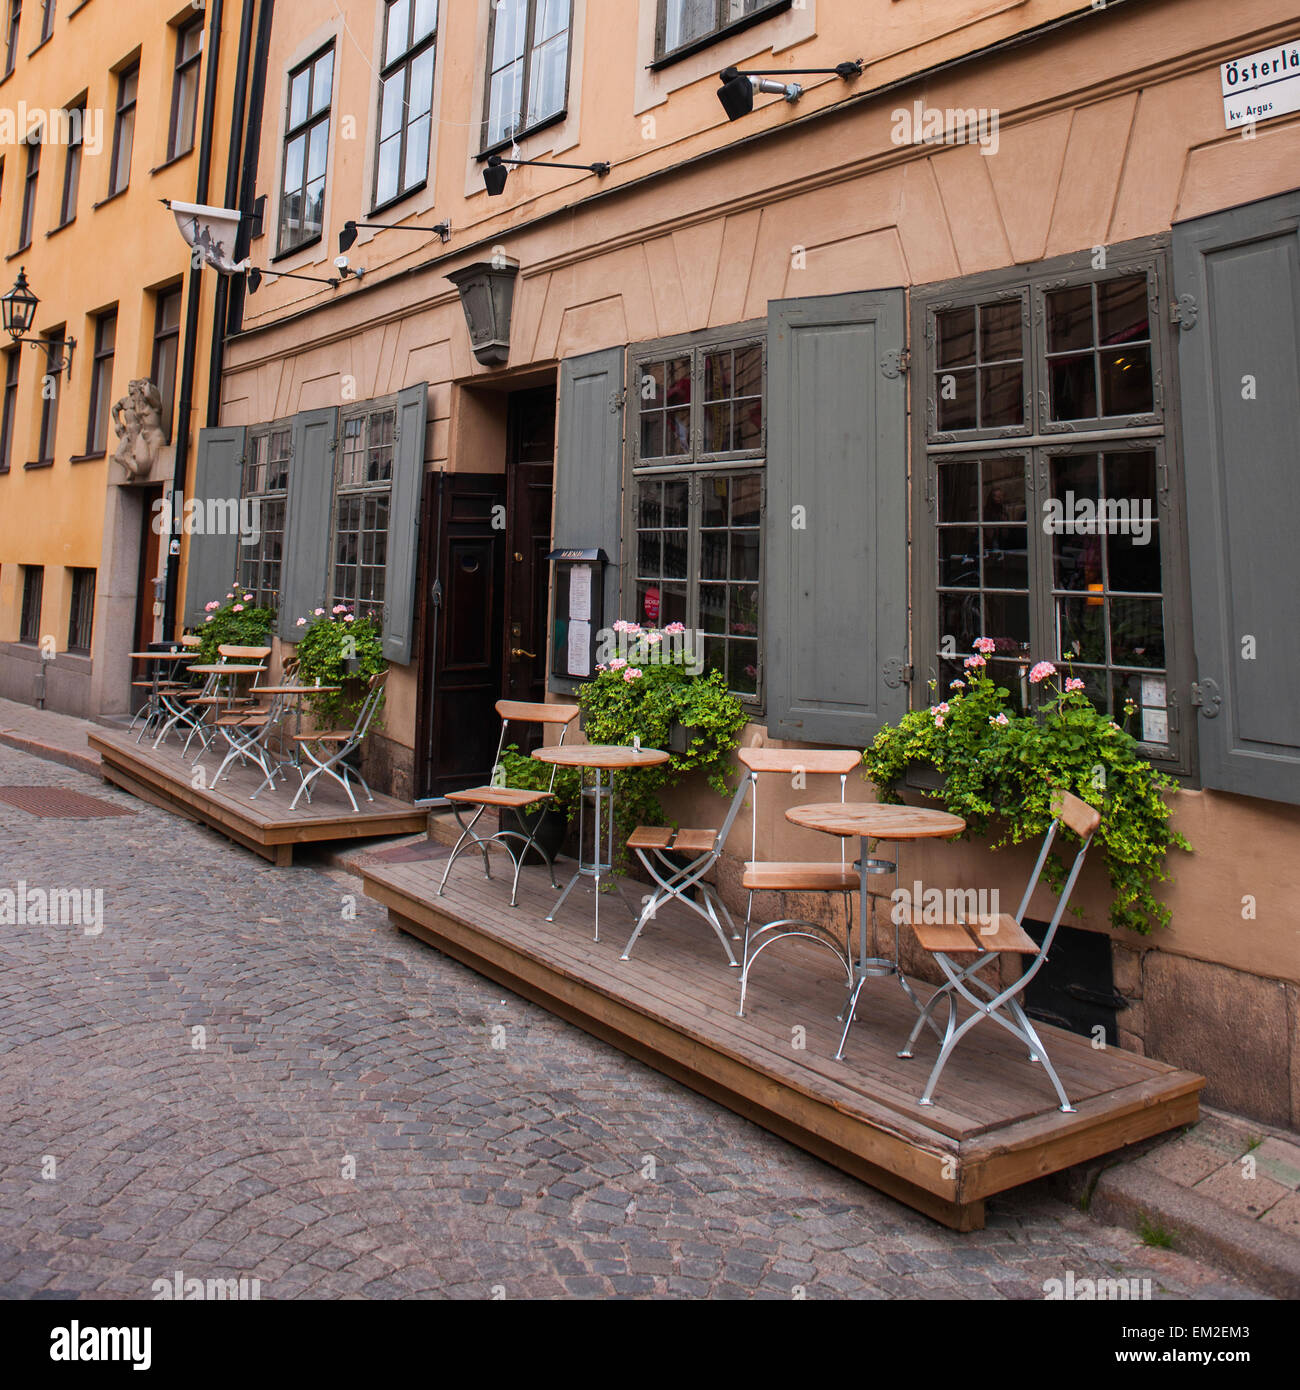 Small Tables And Chairs On A Patio Outside A Restaurant Stockholm